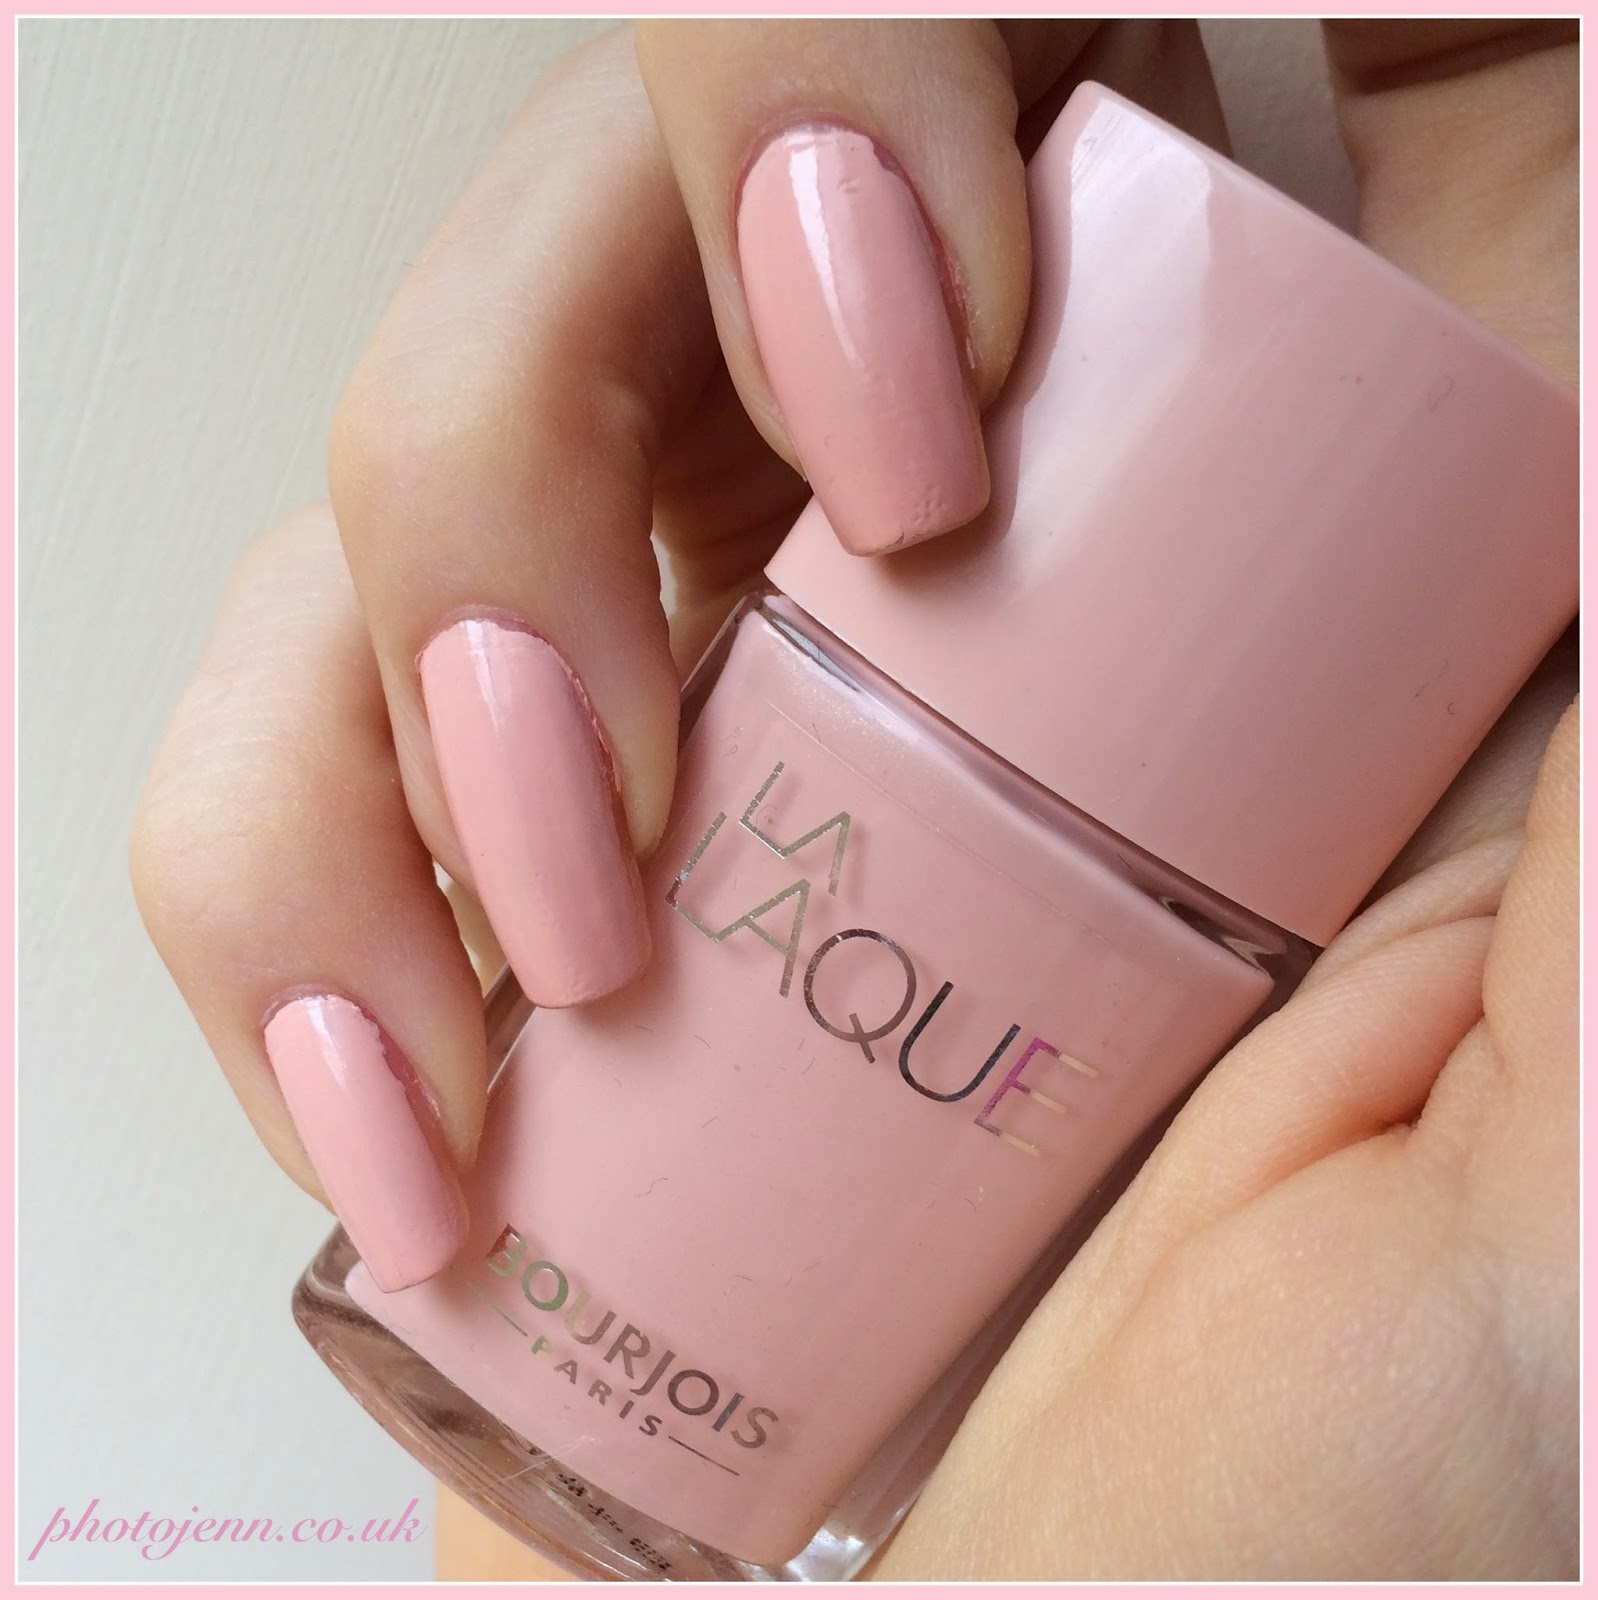 bourjois-la-laque-nail-polish-Chair-Et-Tendre-swatch